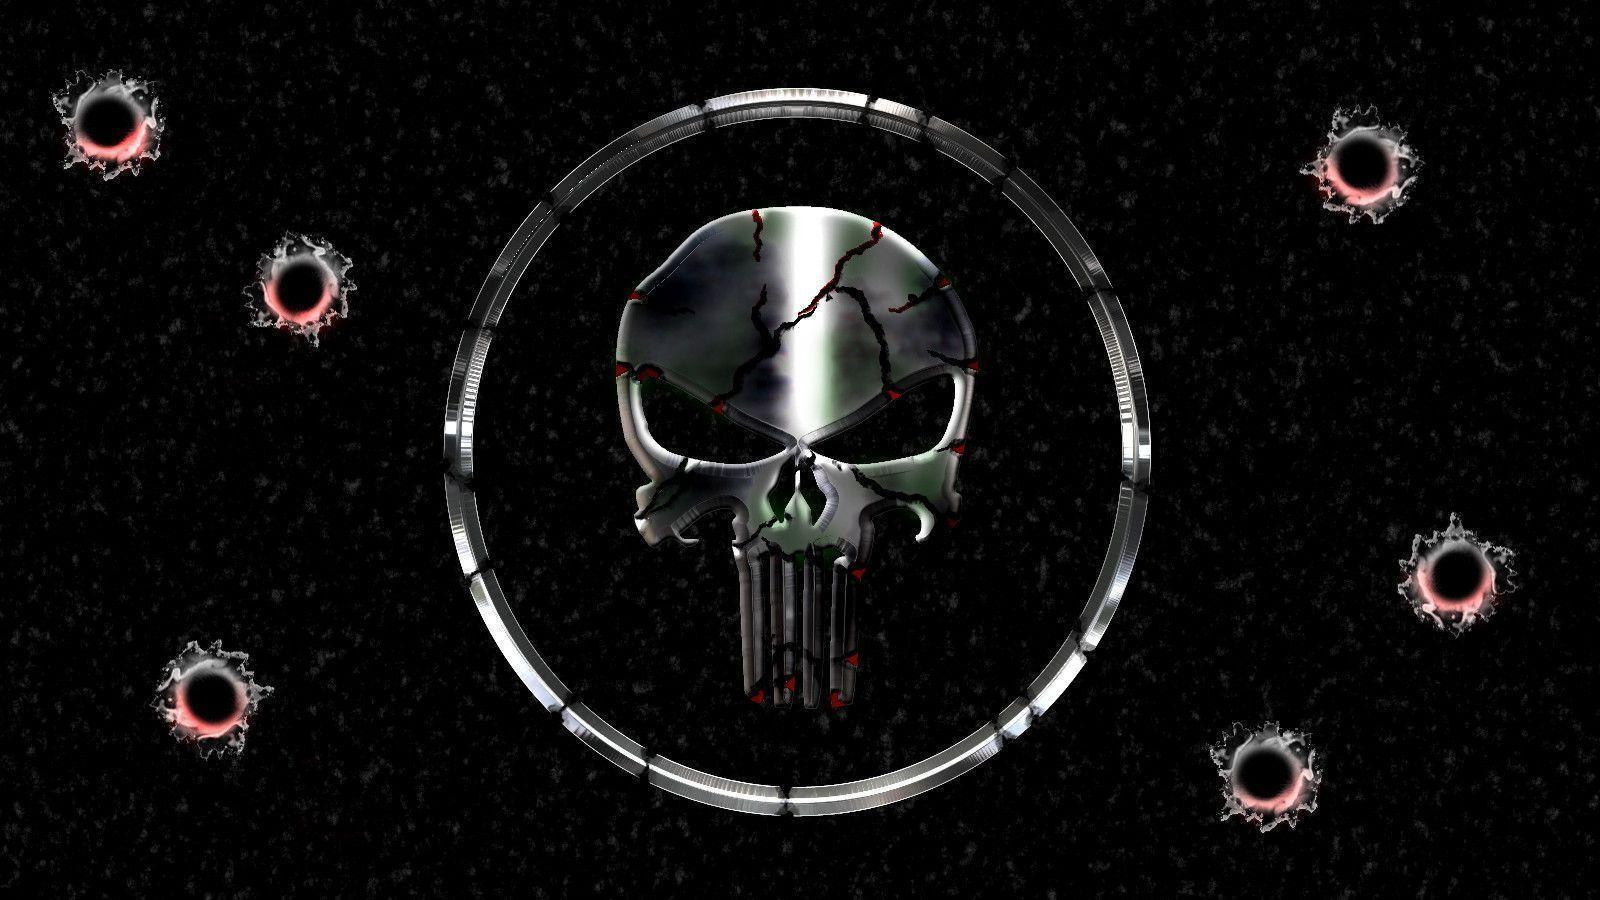 The Punisher Skull Wallpapers - Wallpaper Cave